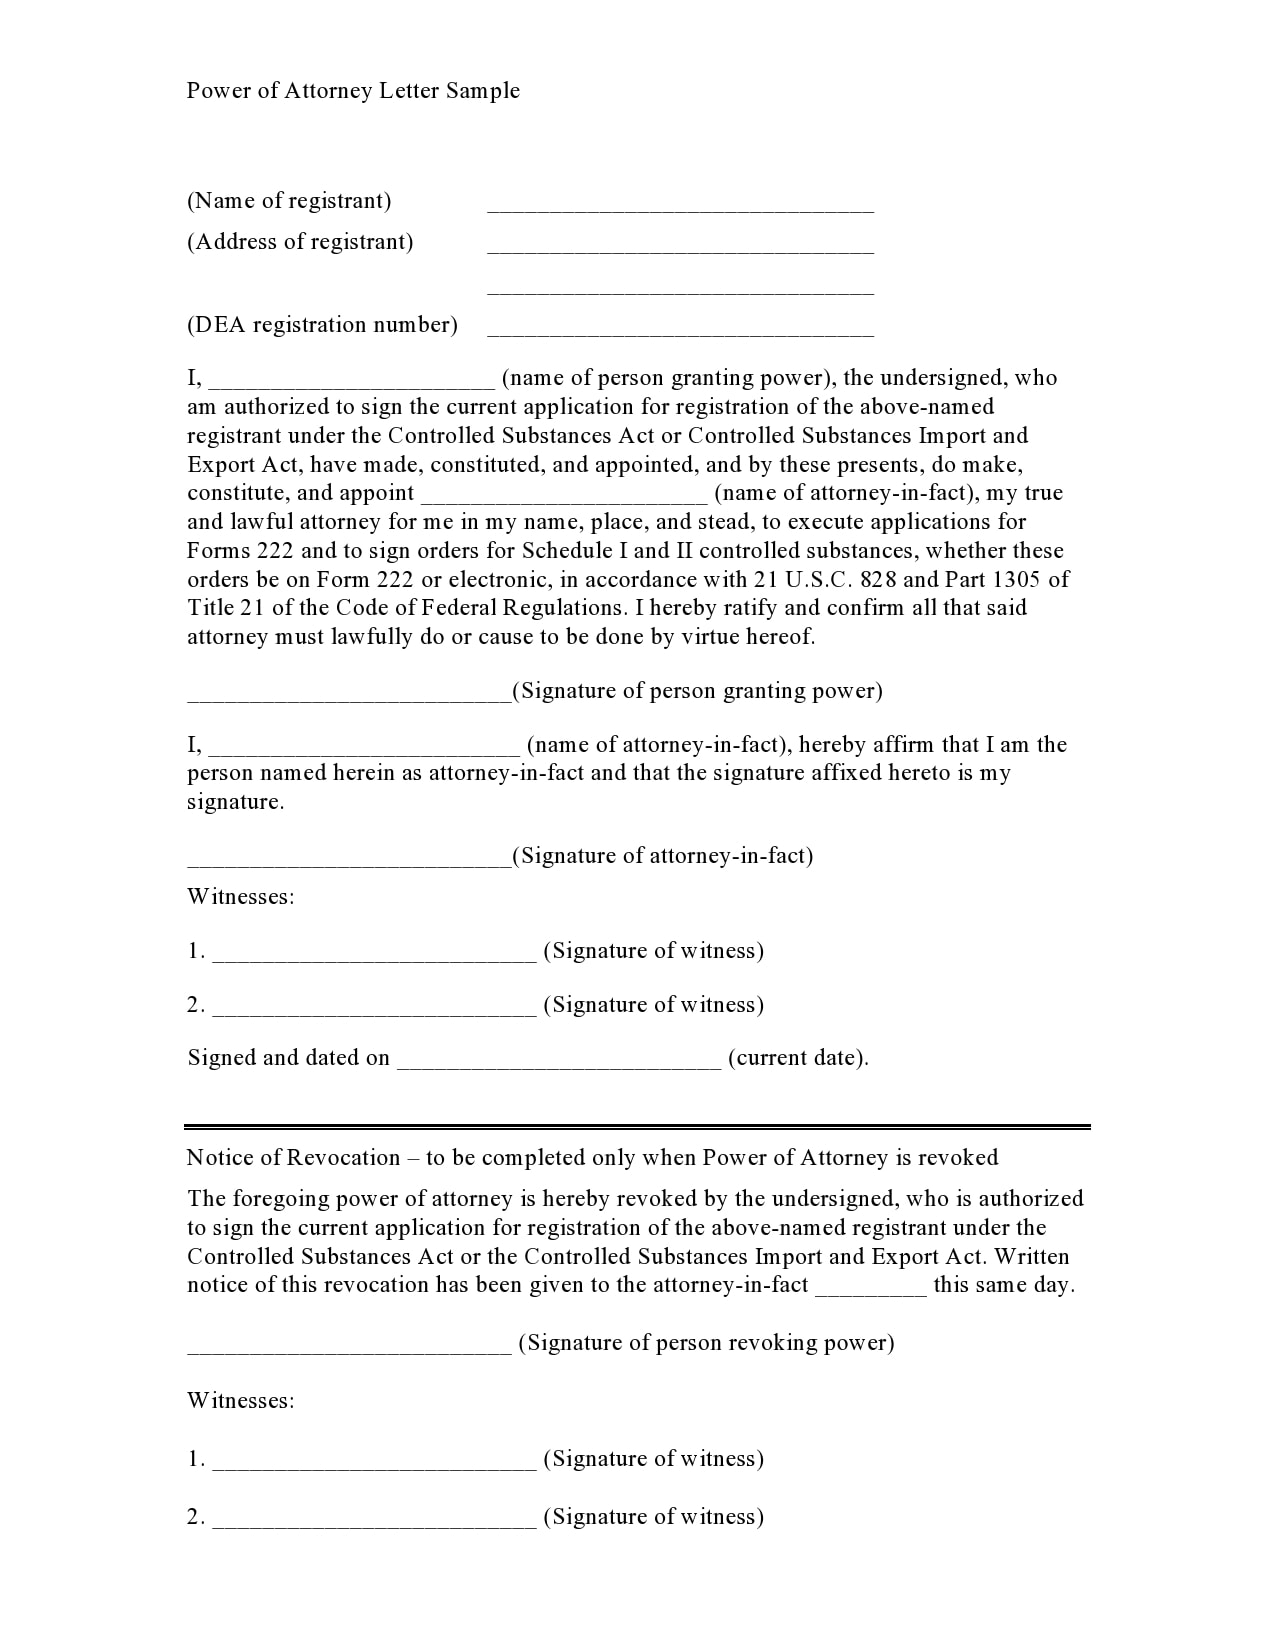 power of attorney letter 09